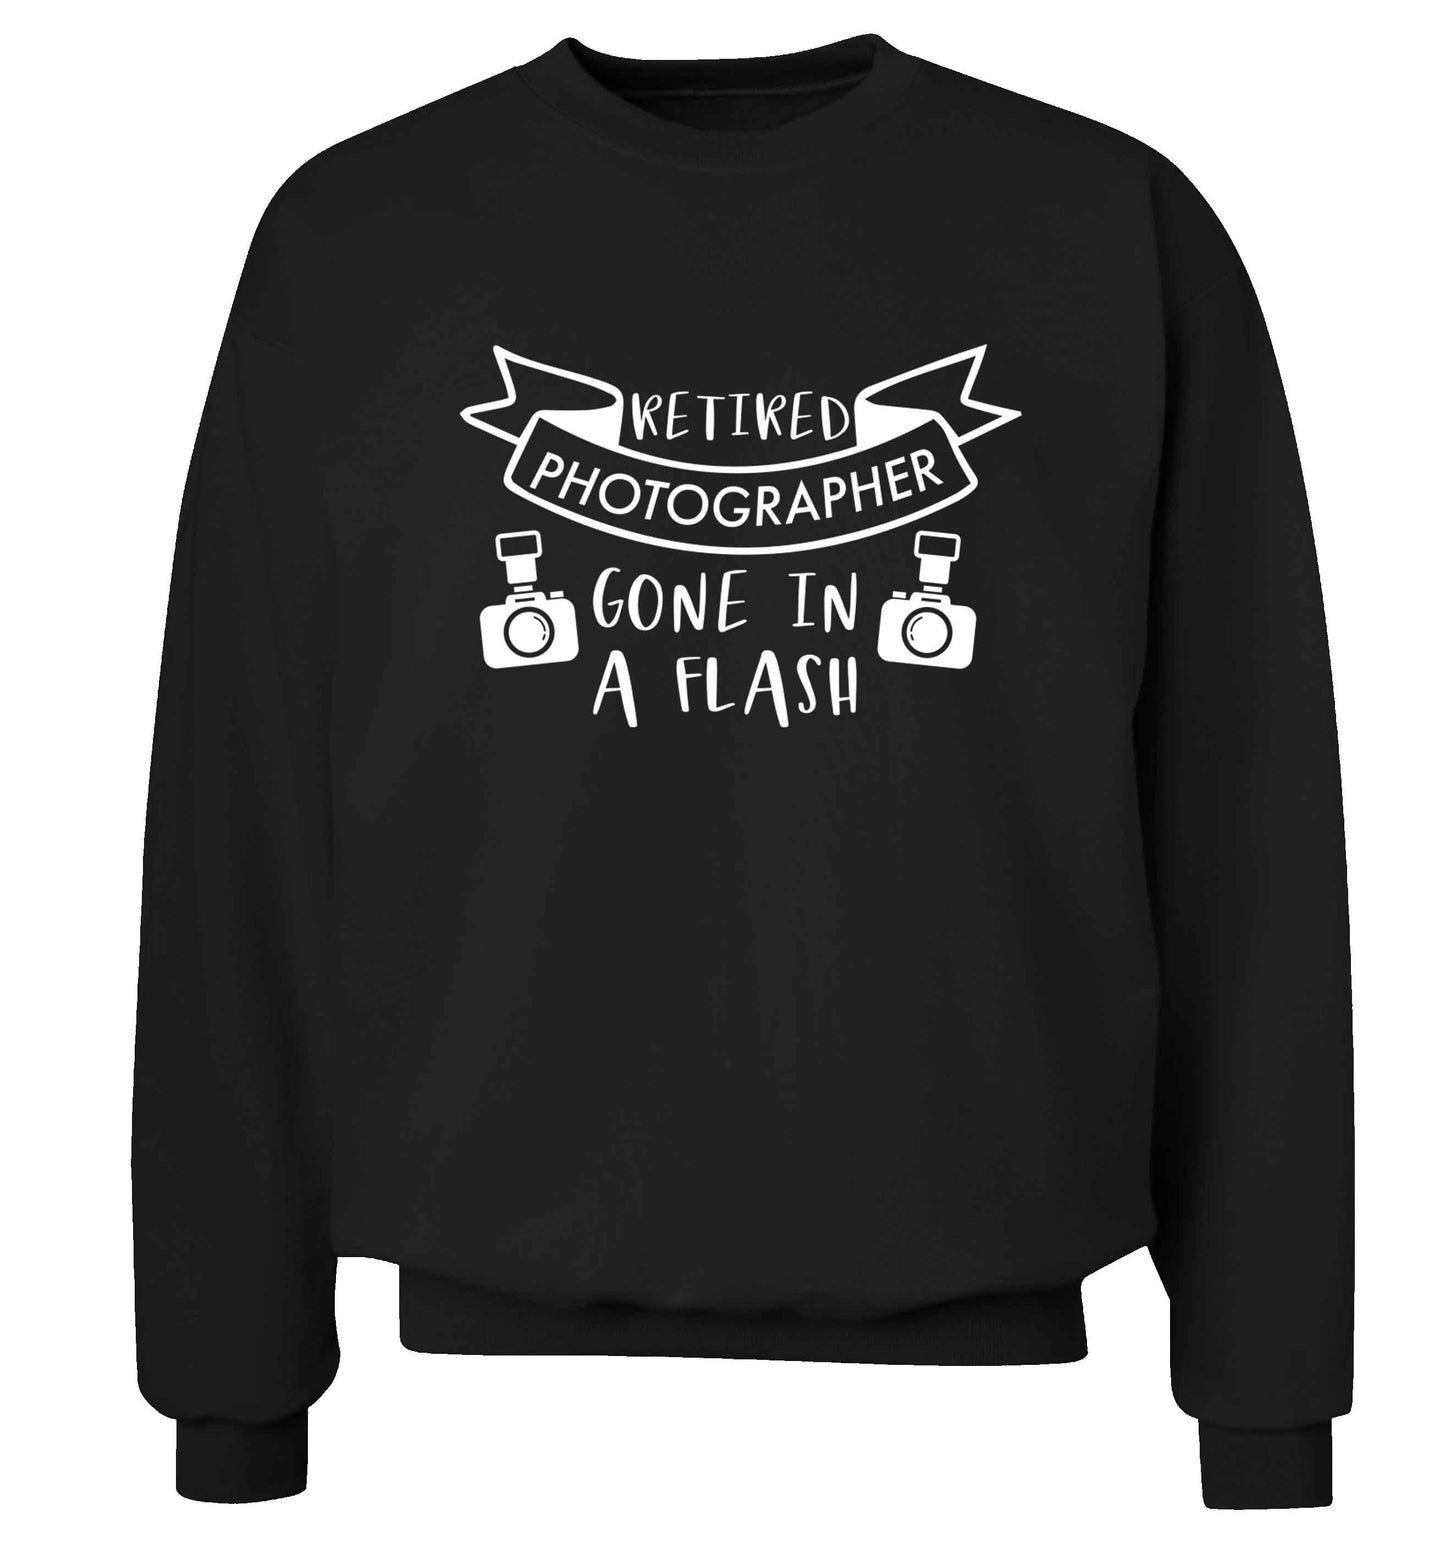 Retired photographer gone in a flash Adult's unisex black Sweater 2XL